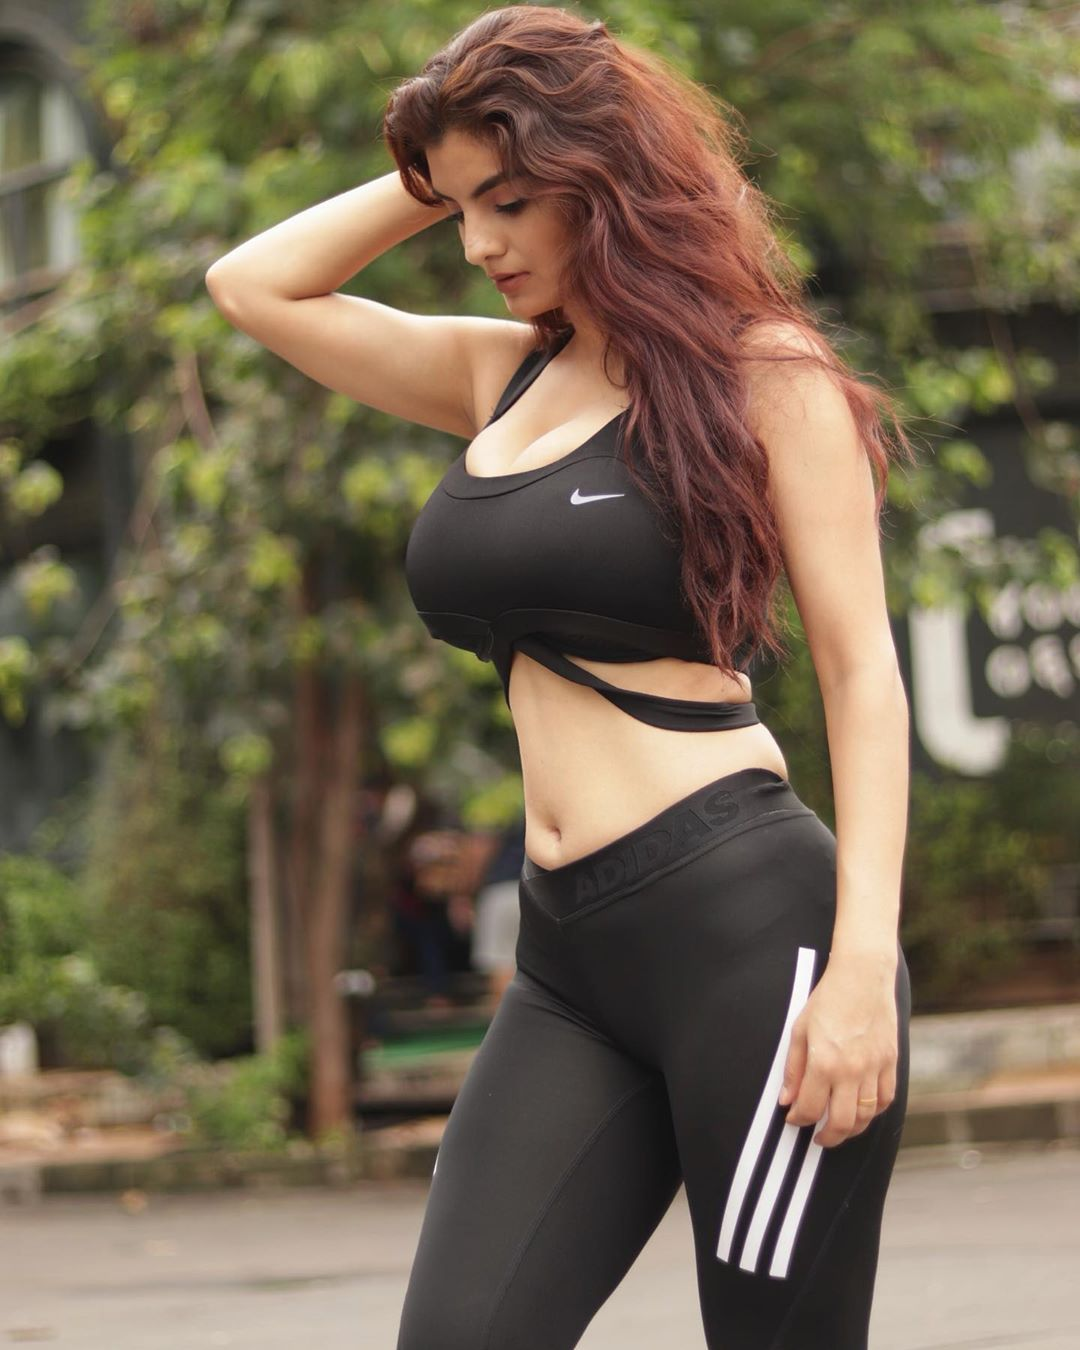 Anveshi  jain in a sports outfit